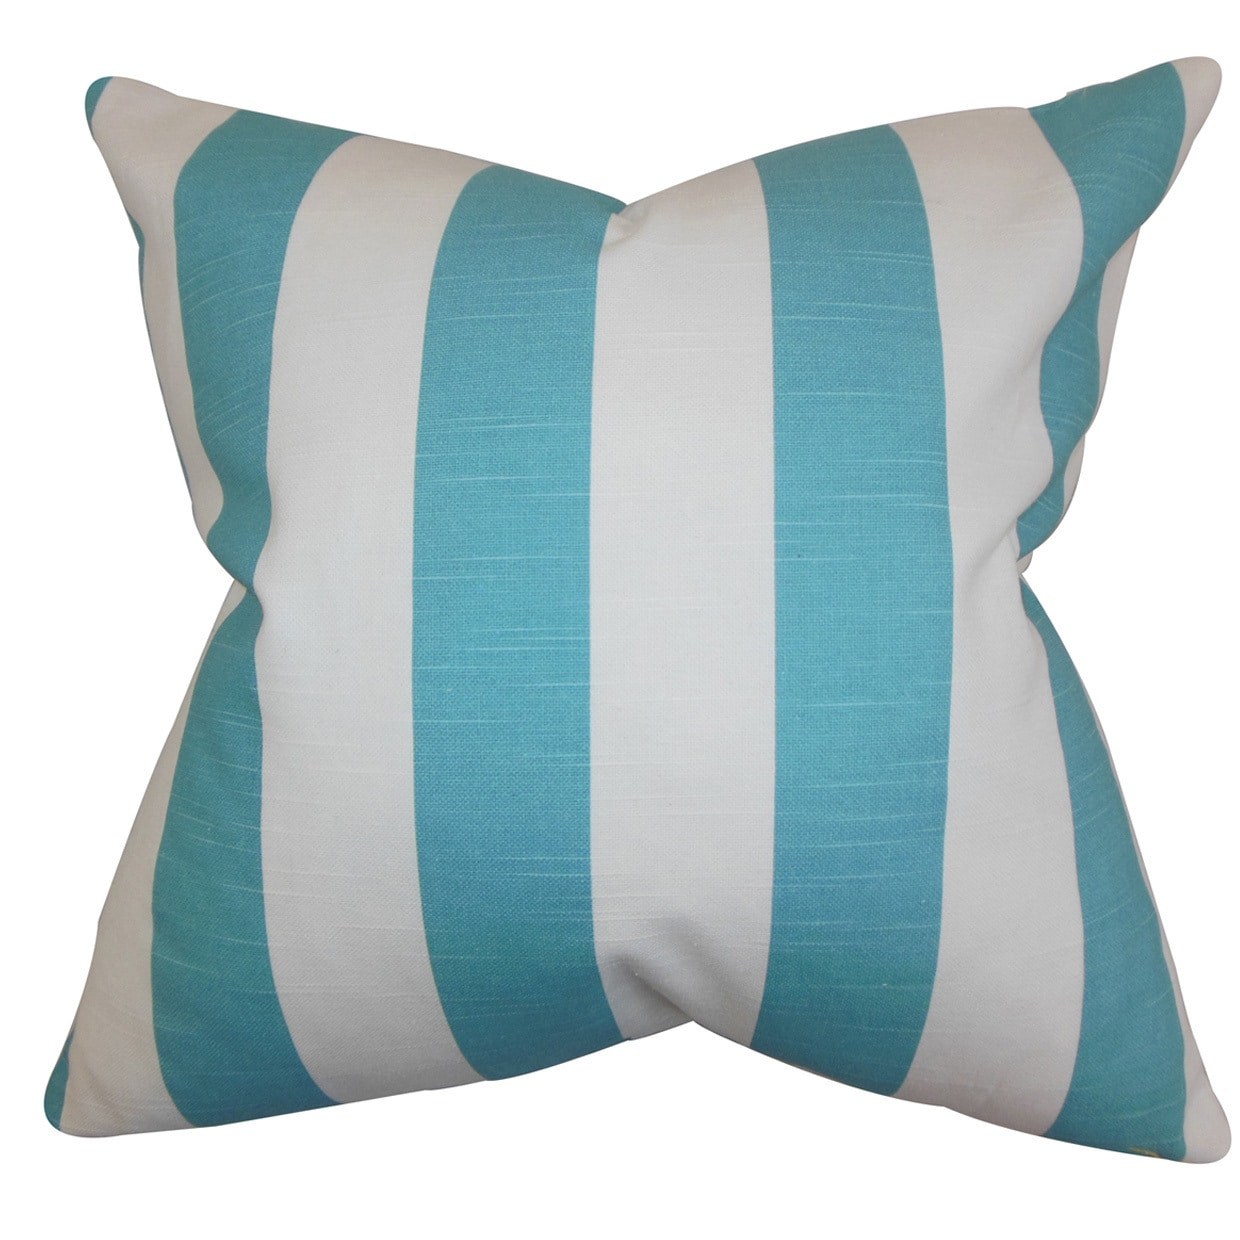 "The Pillow Collection Acantha Stripes 22"" x 22"" Down Feather Throw Pillow Coastal Blue"